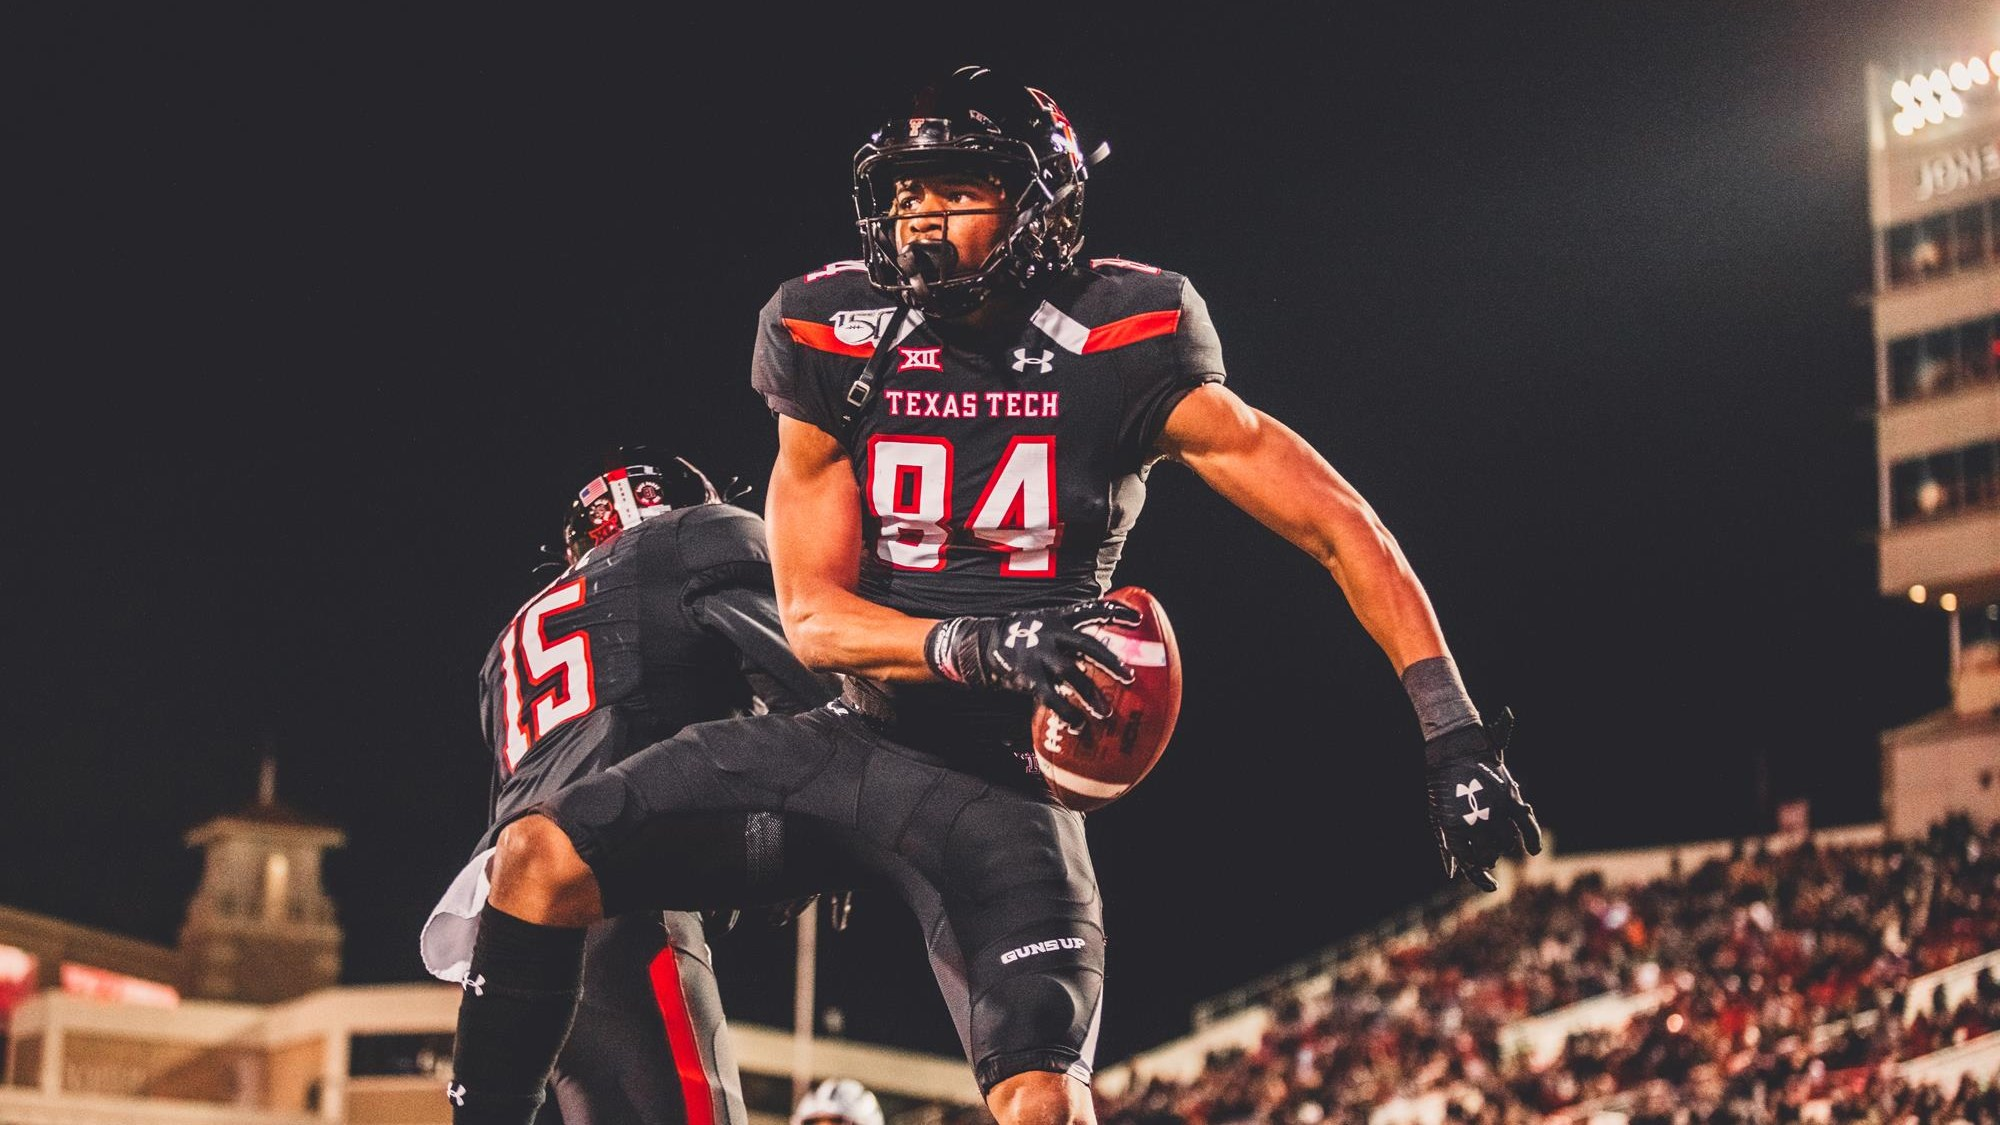 Big 12 Announces Revised 2020 Football Schedule Texas Tech Red Raiders